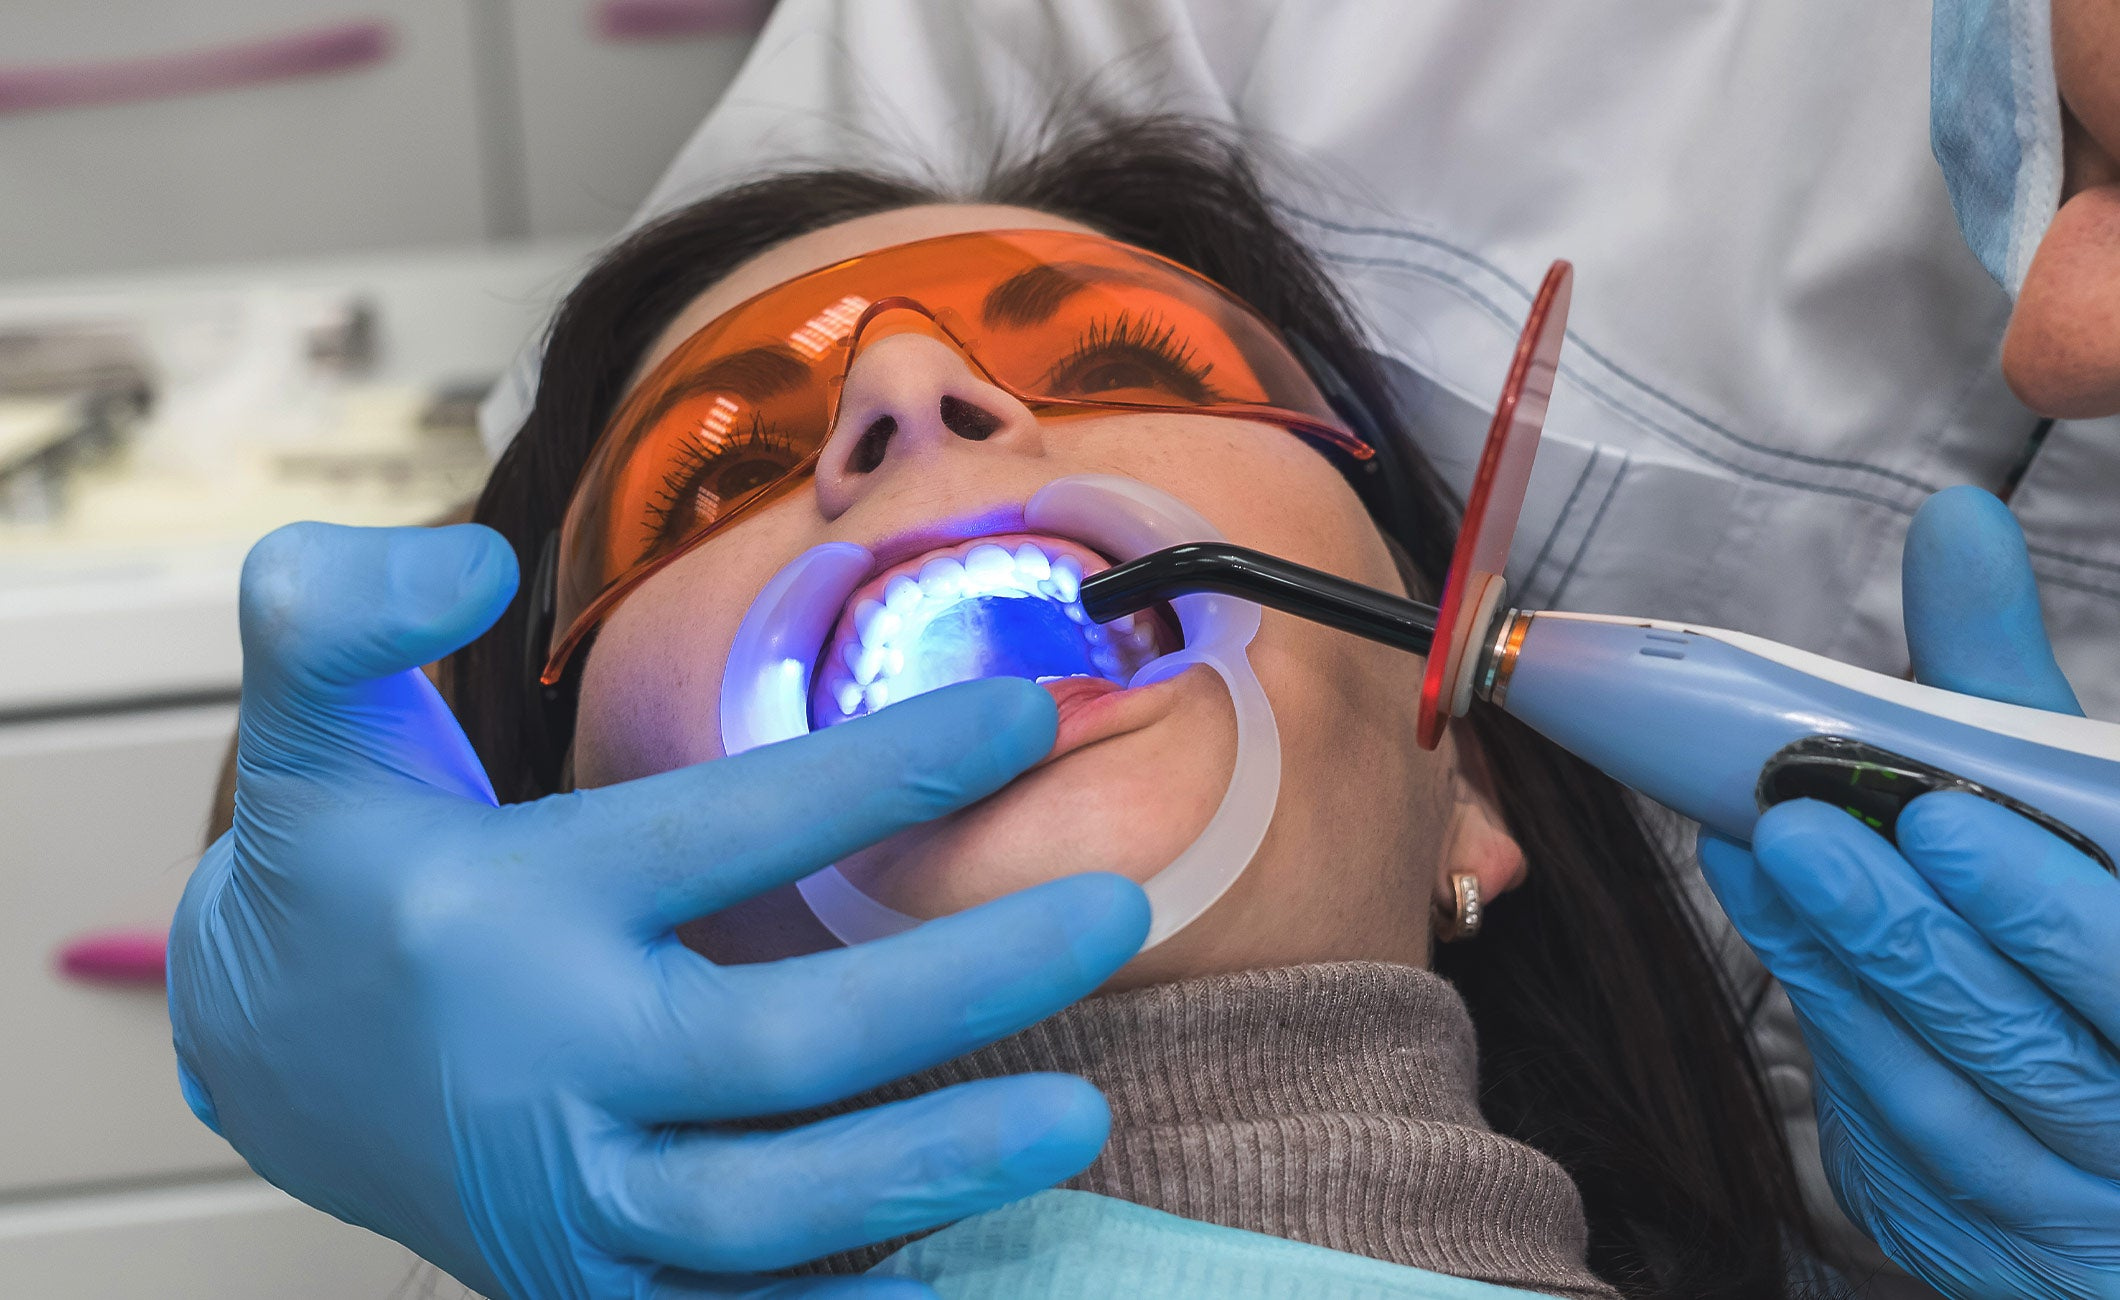 laser teeth whitening being done on a woman